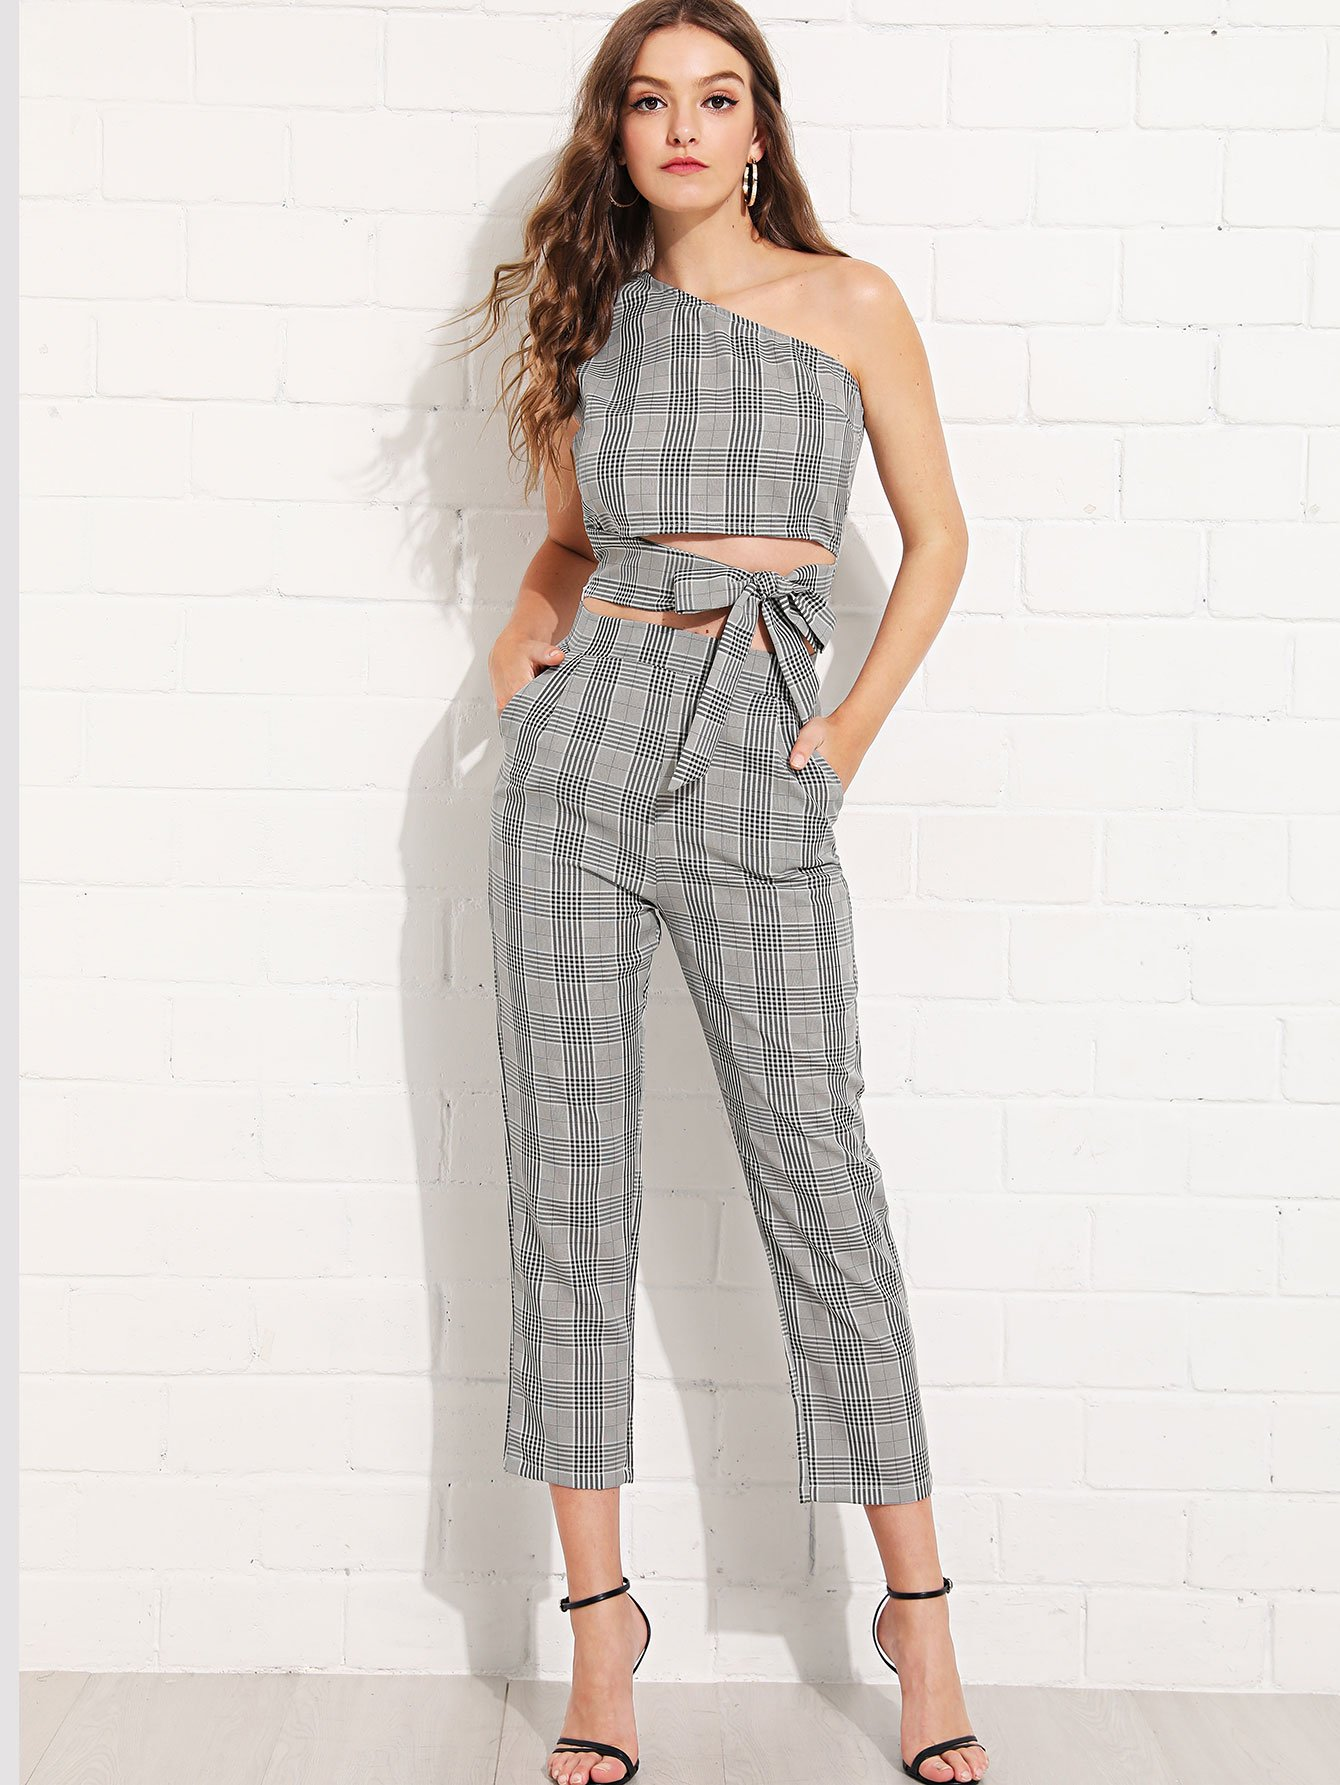 Glen Plaid One Shoulder Knot Top With Pants glen plaid ruffle cami top